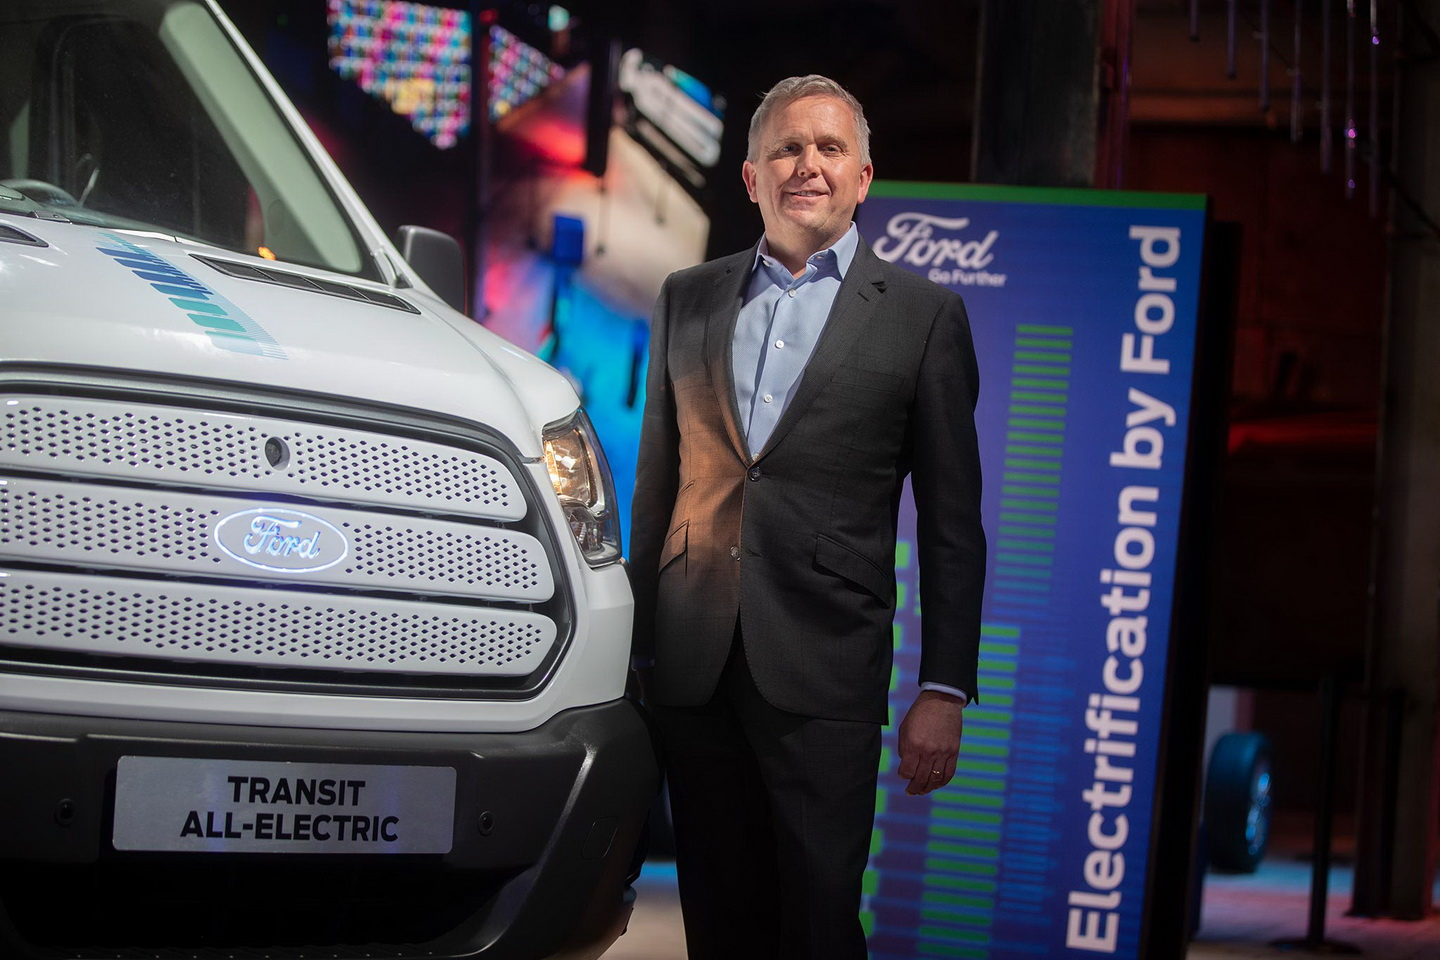 Ford Go Further 2019 event hybrid cars 38